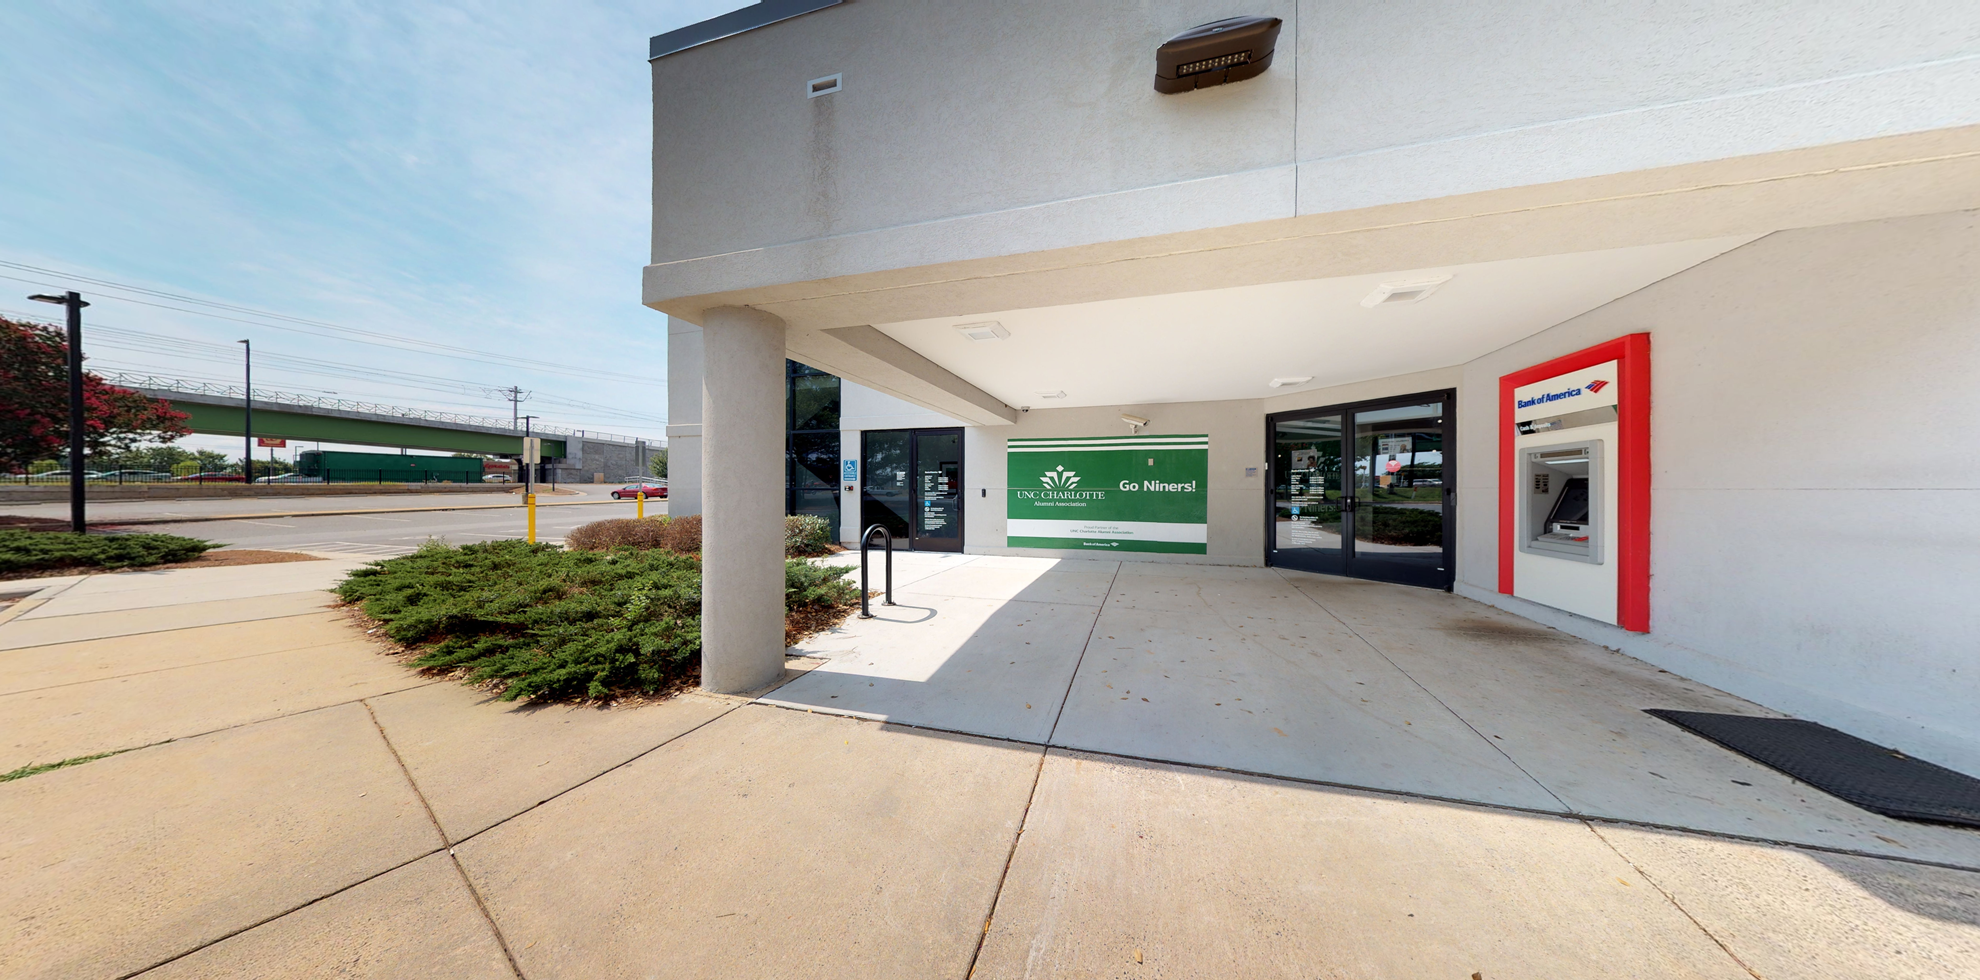 Bank of America financial center with drive-thru ATM and teller | 8551 US Highway 29, Charlotte, NC 28262